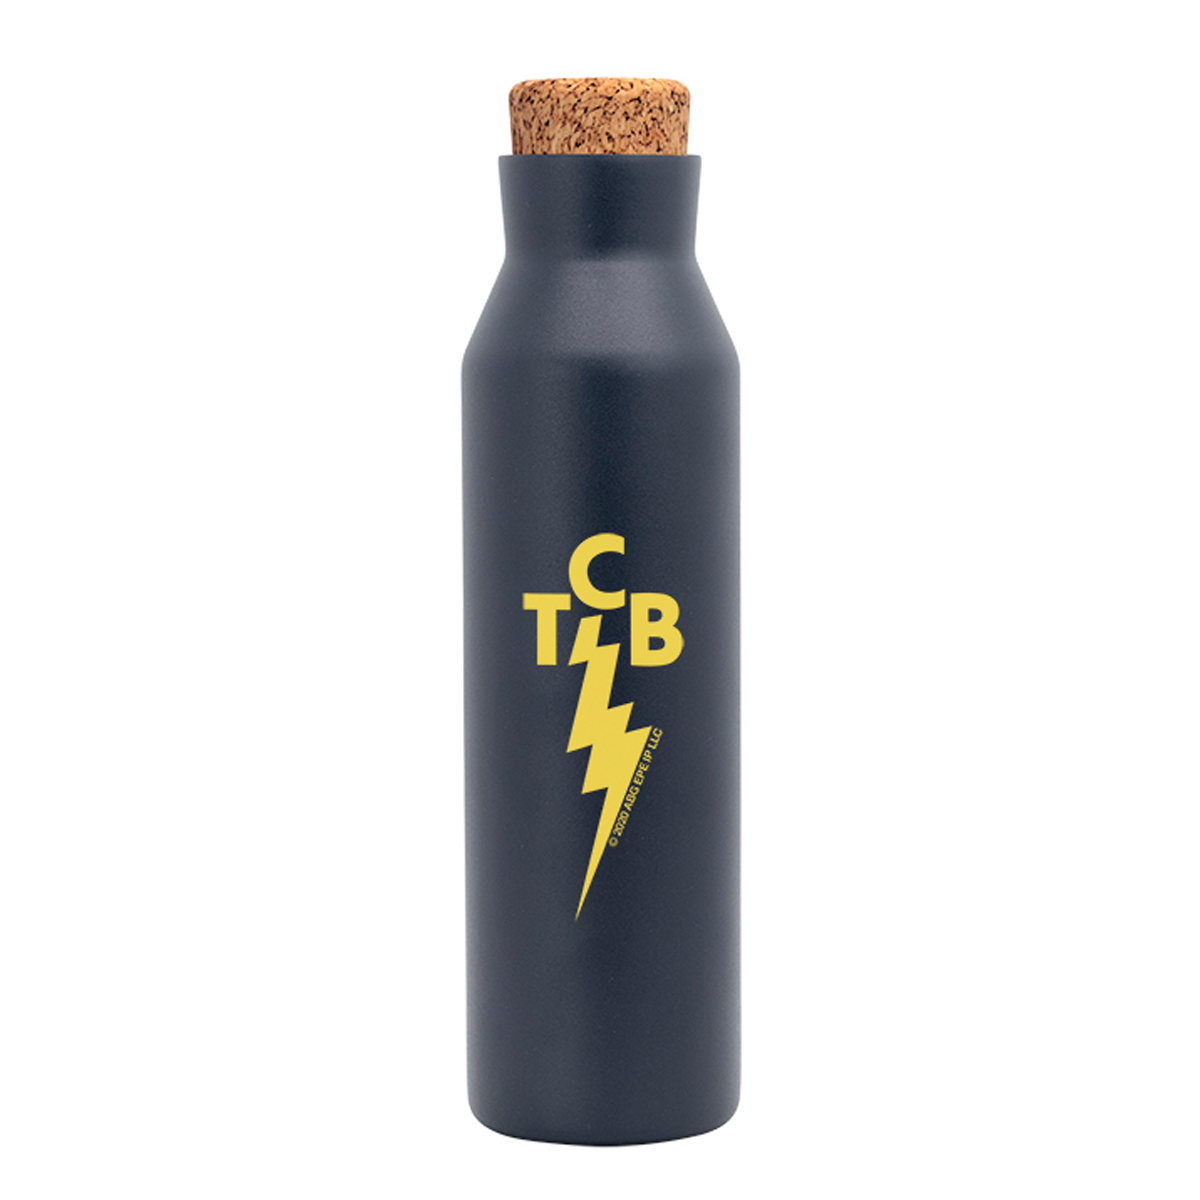 TCB OG 20oz Stainless Steel Bottle